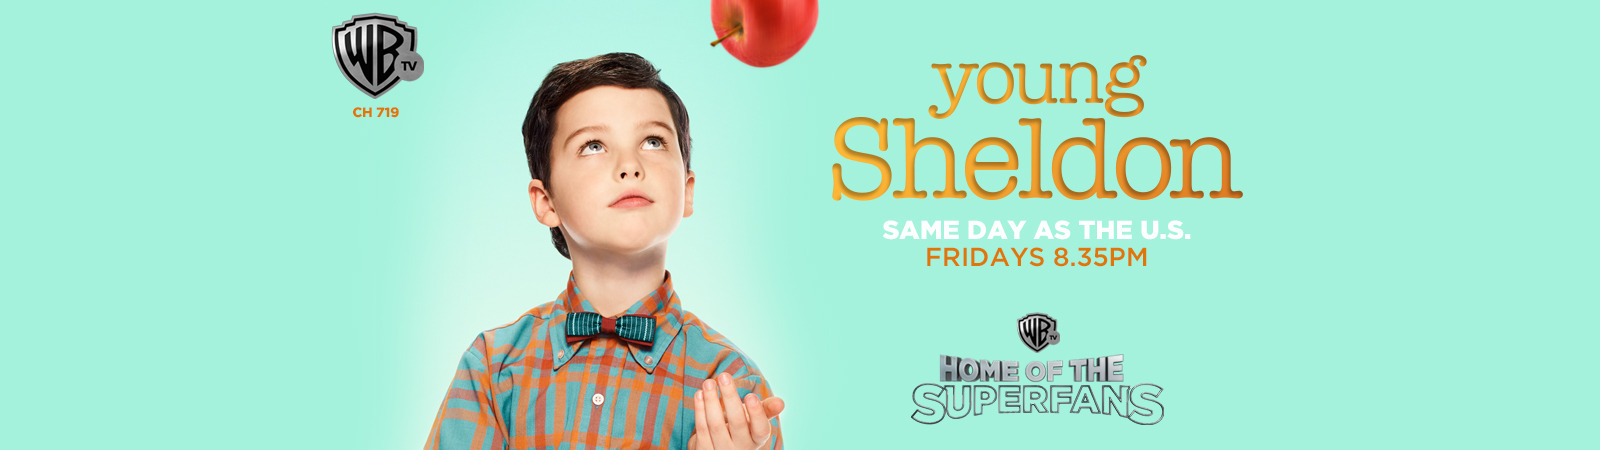 Warner - Young Sheldon